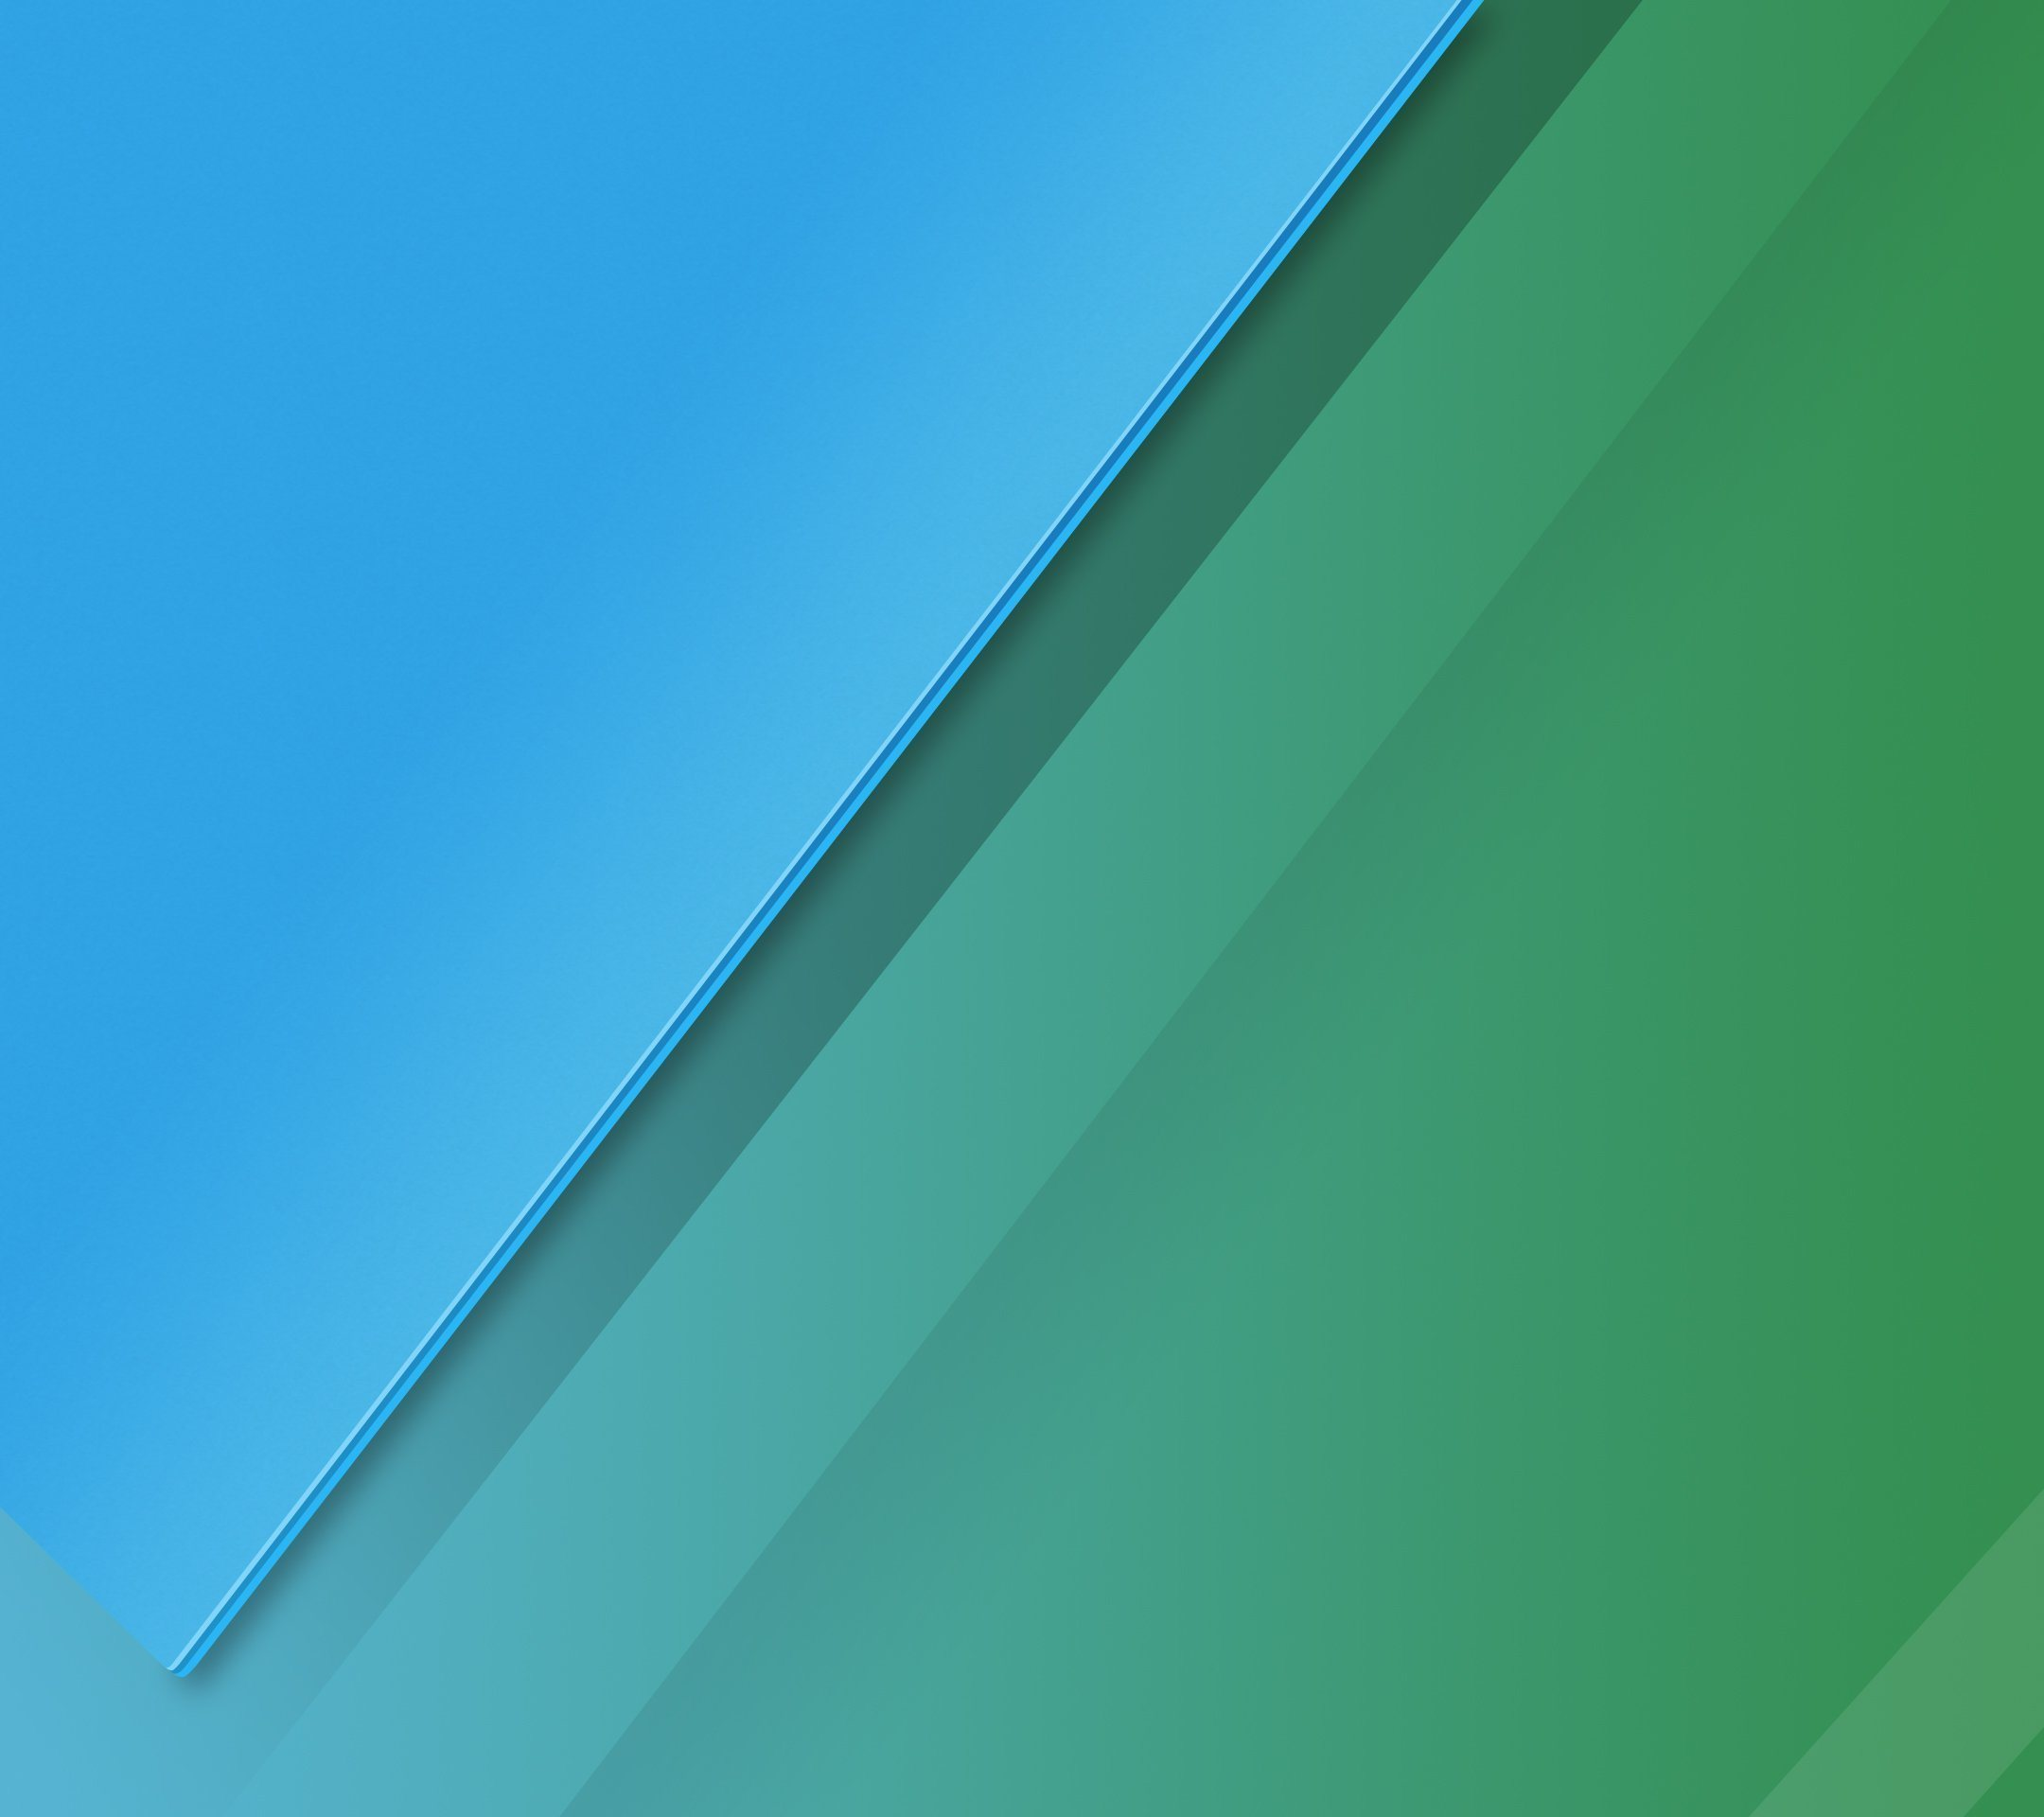 cyanogenmod 13 default stock wallpaper | cm 13 wallpaper full hd